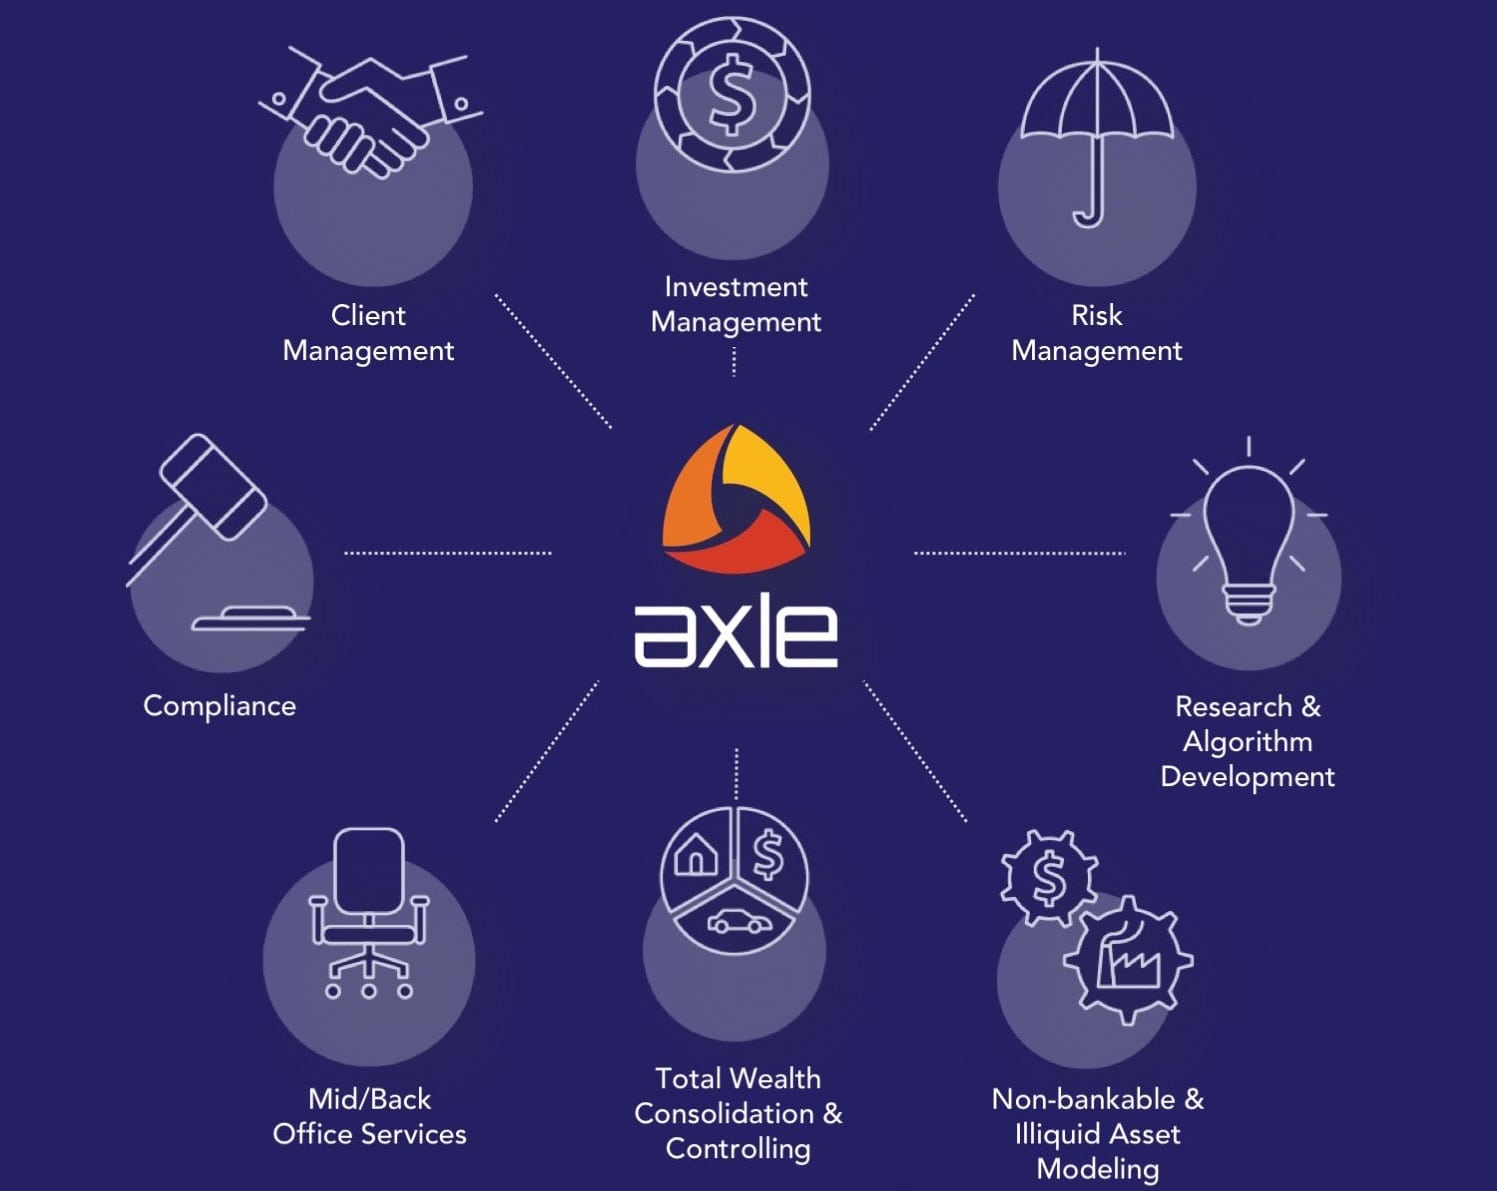 Wealth platform AXLE pioneering total wealth and risk Services